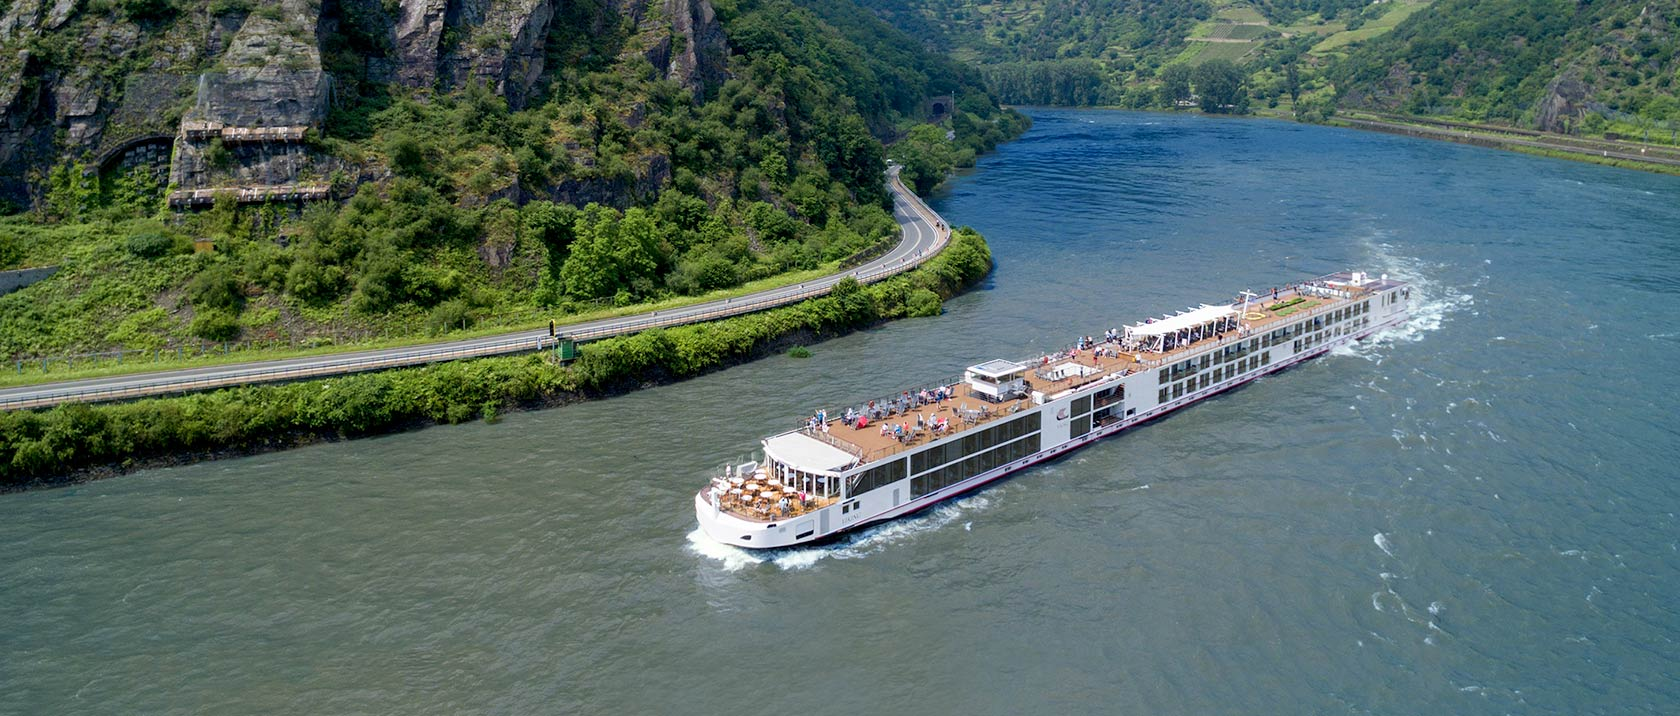 A Viking river ship sailing along the Middle Rhine river